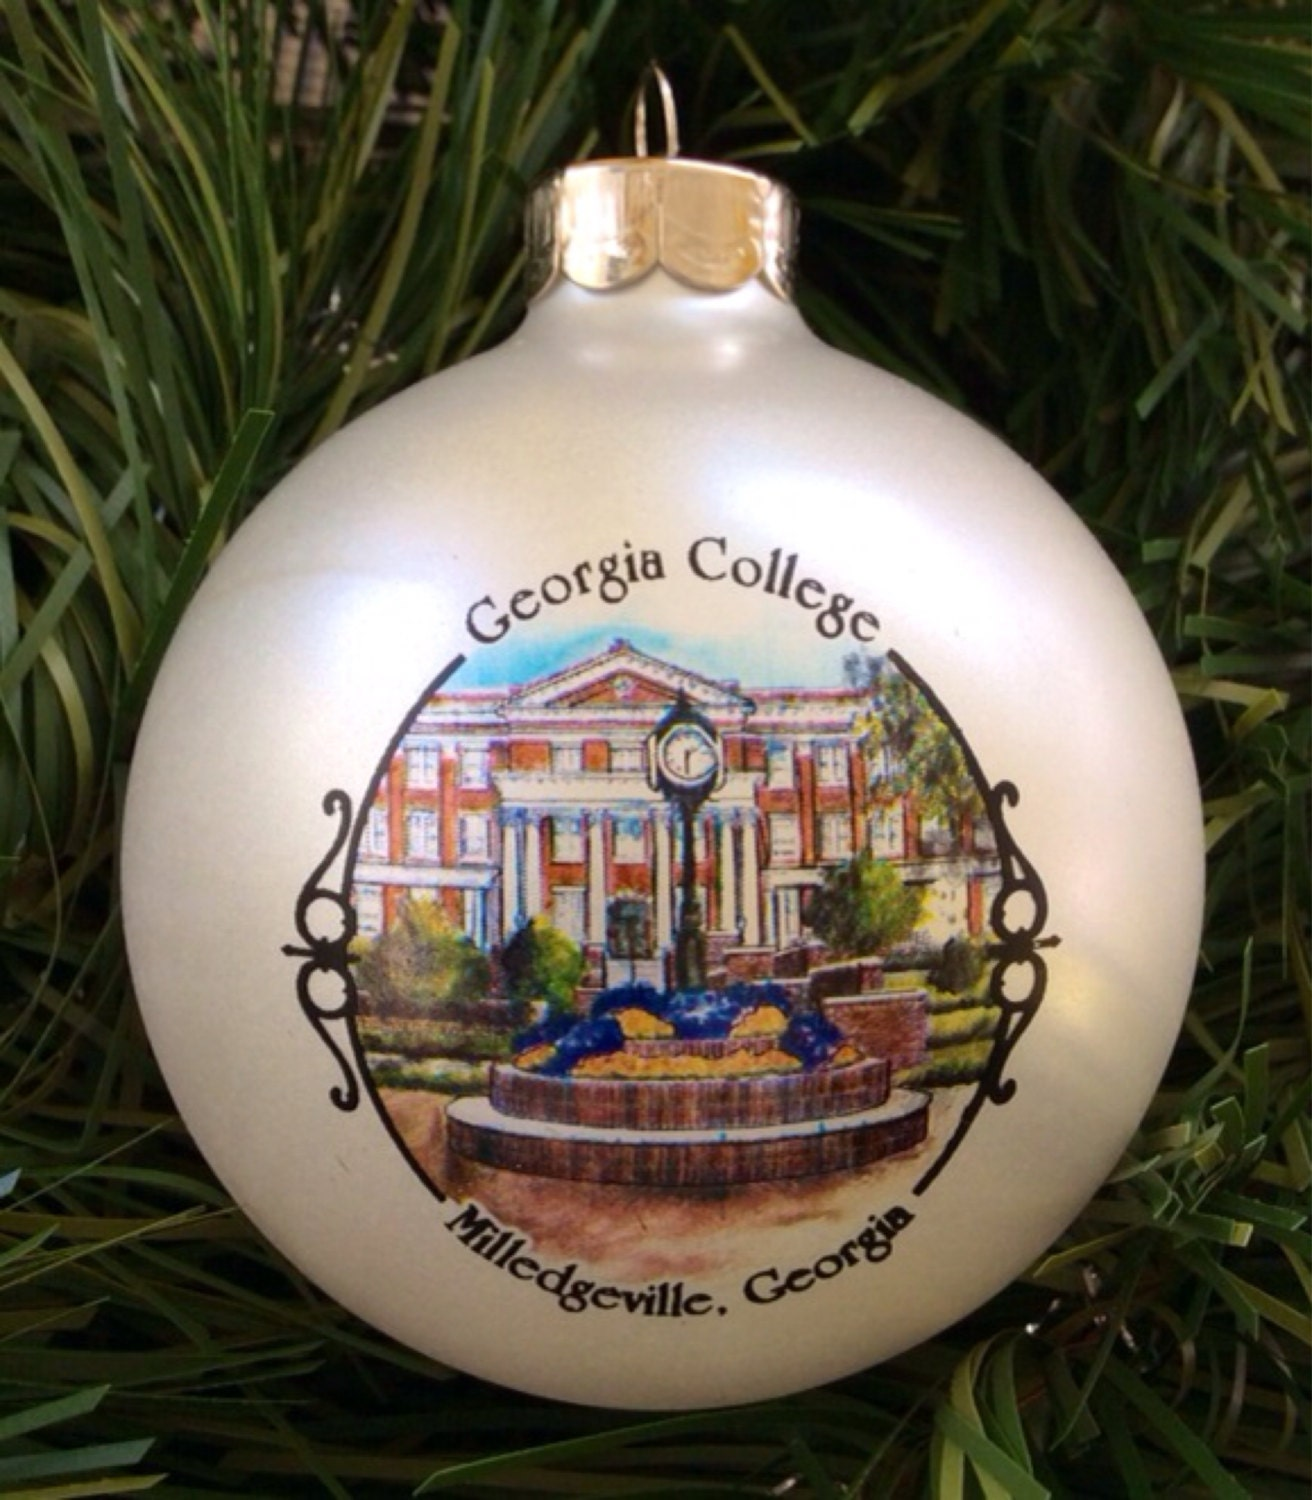 University of michigan christmas ornaments - Georgia College And State University Ornament